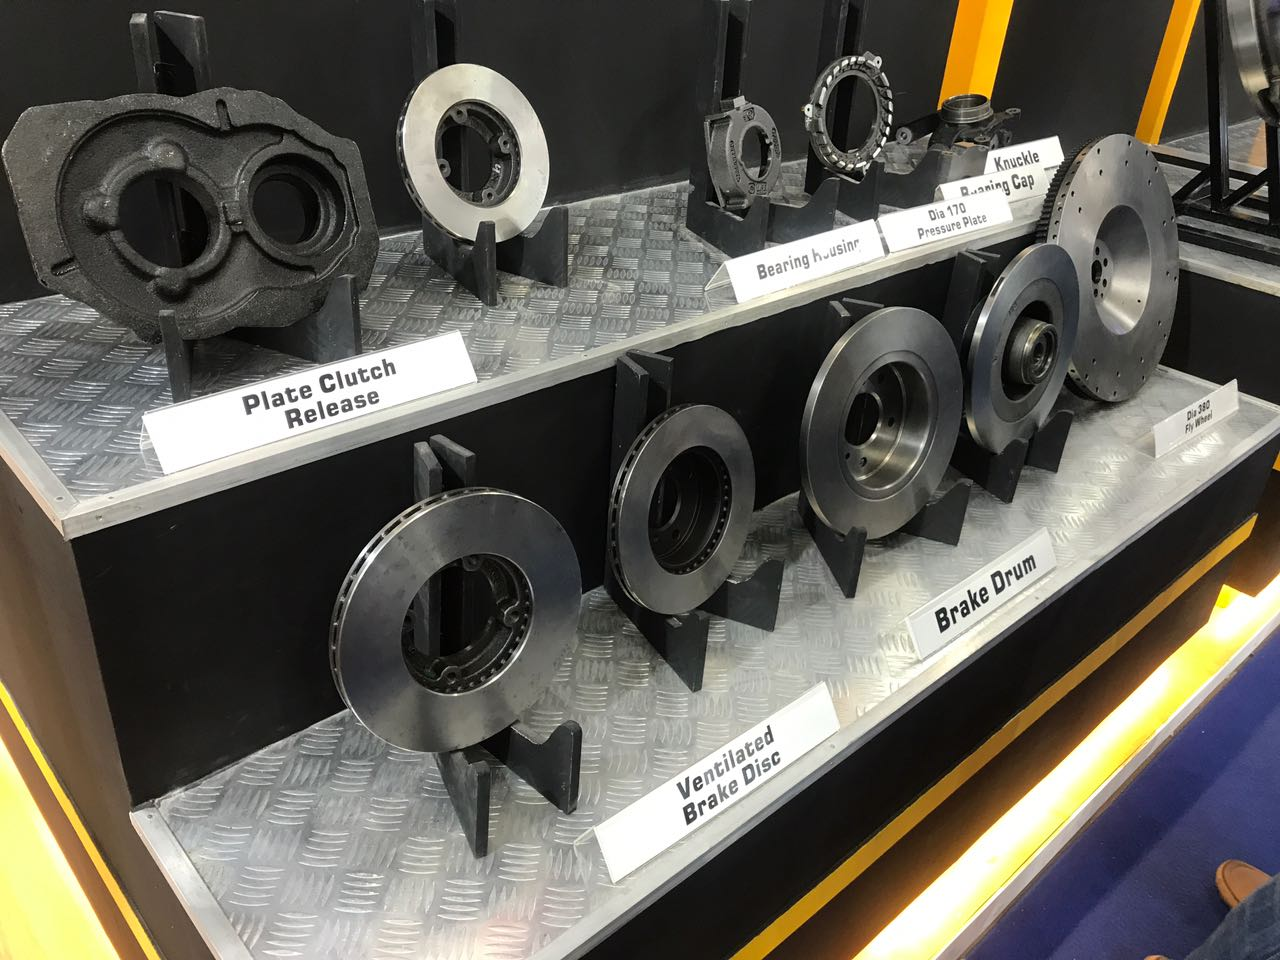 <p>Setco Automotive has a range of products at display that includes bearing housing, ventilated brake disc, plate clutch release and also bearing caps</p>